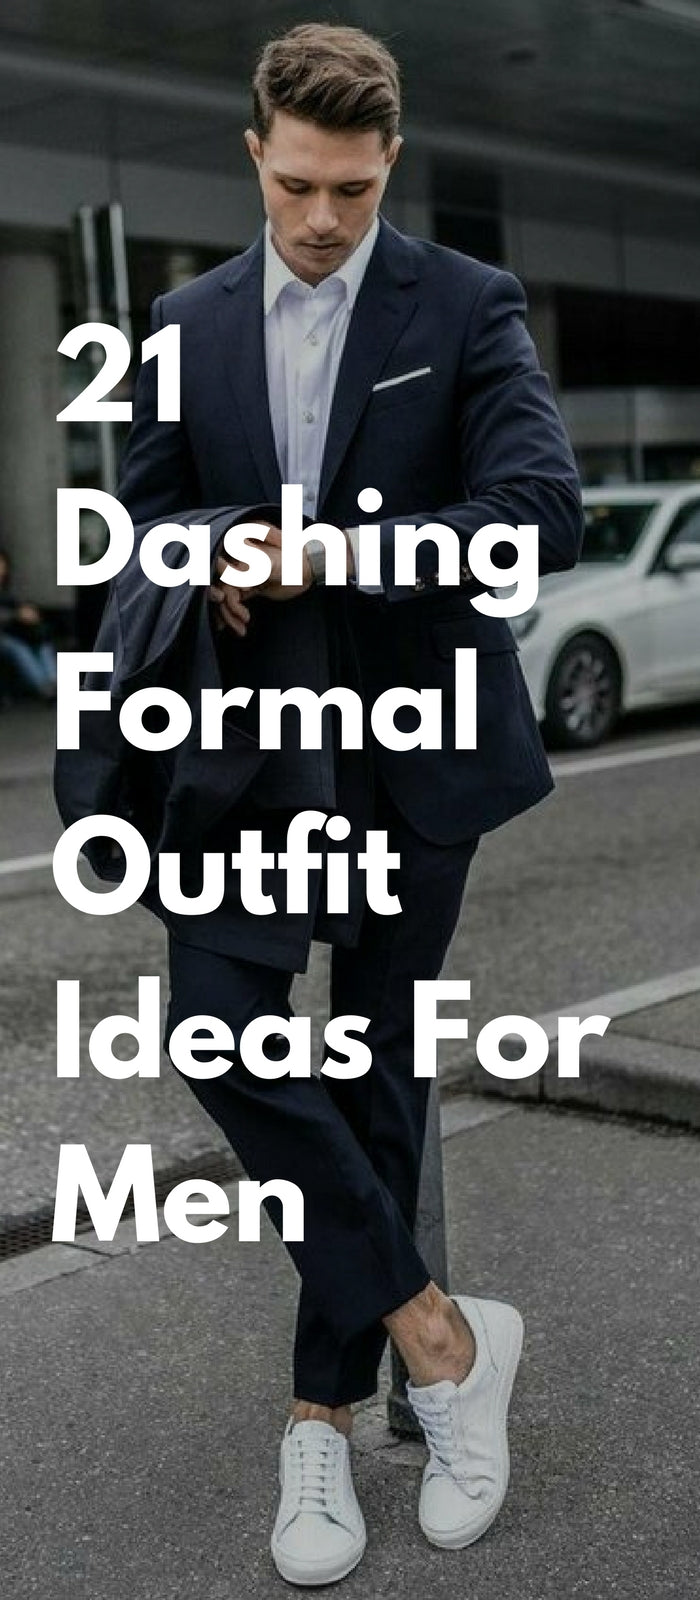 fe08248bf2349 21 Dashing Formal Outfit Ideas For Men – LIFESTYLE BY PS